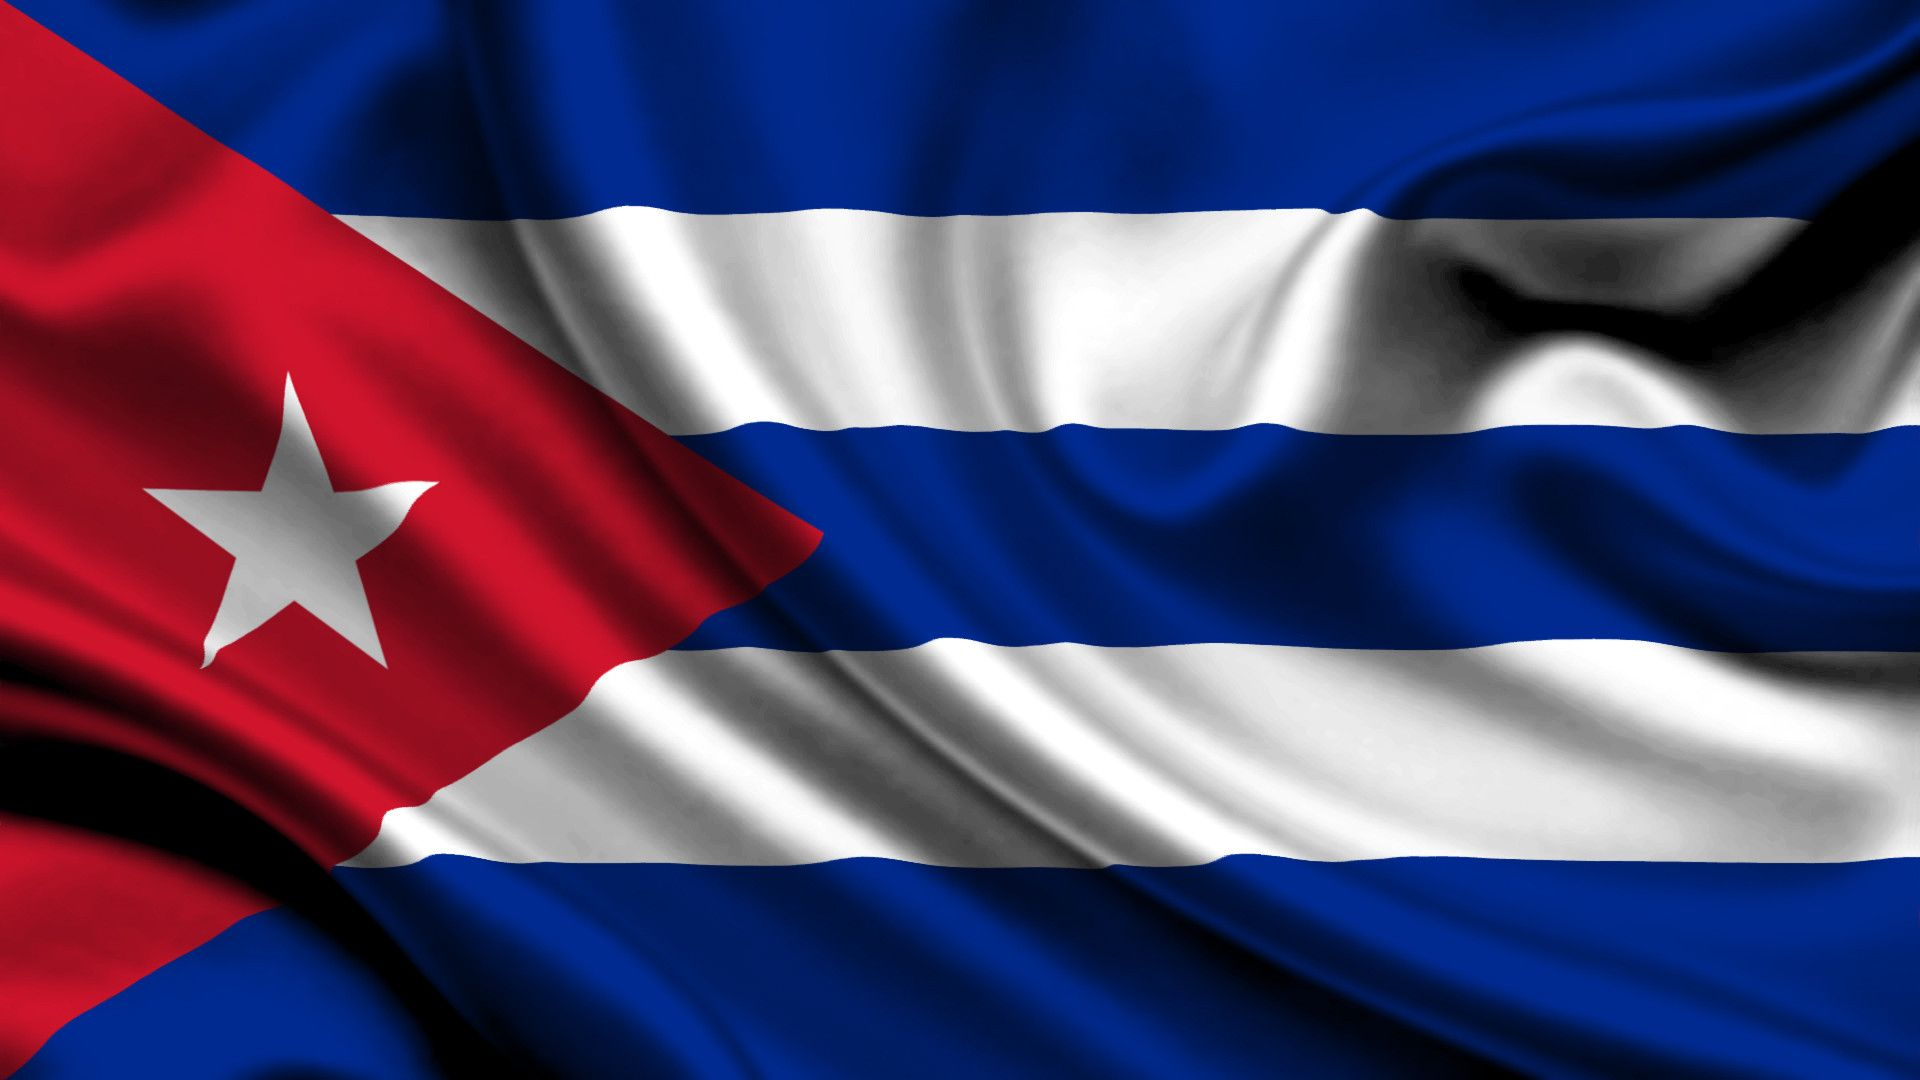 Presenting The Beatiful Cuba Flag Cuba Flag Cuban Flag Flag